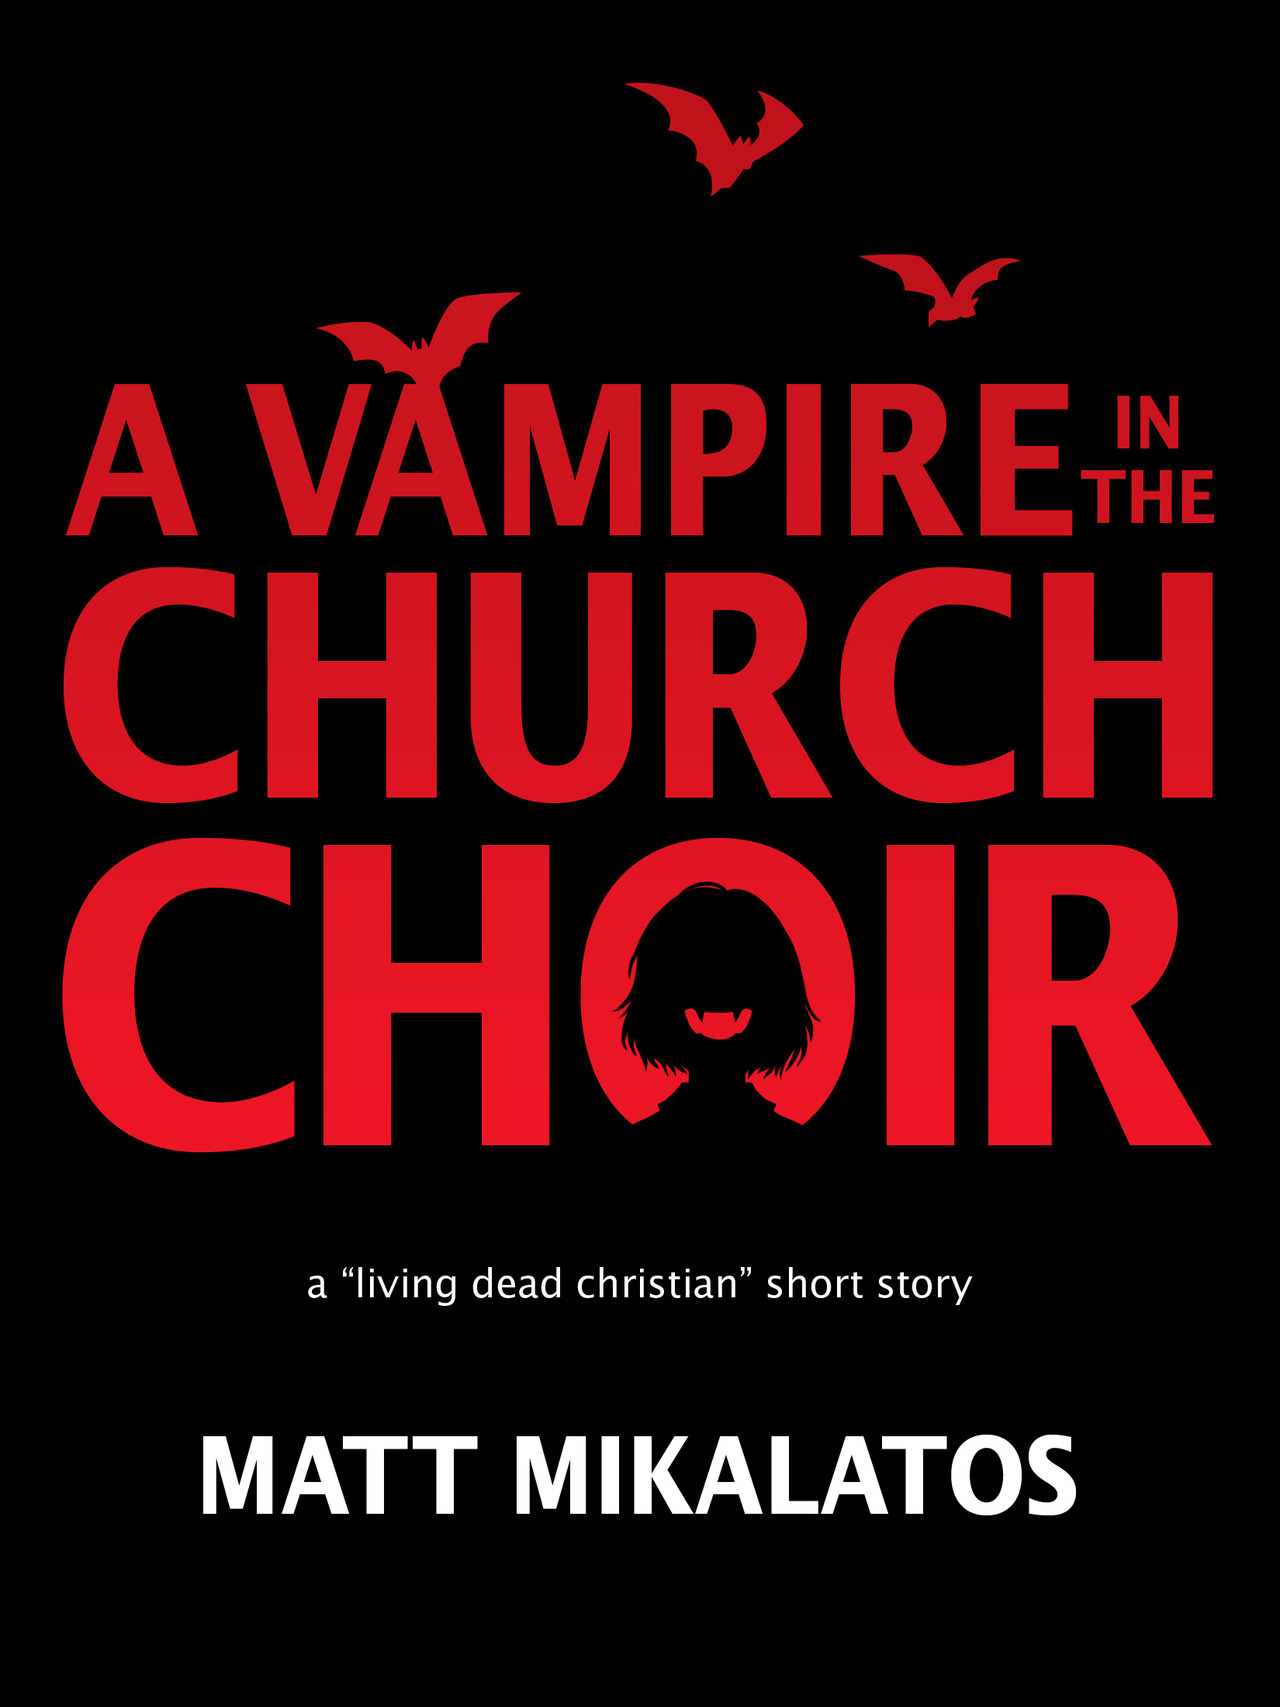 Book free to download here: http://www.mikalatos.com/2012/10/new-living-dead-christian-short-story.html